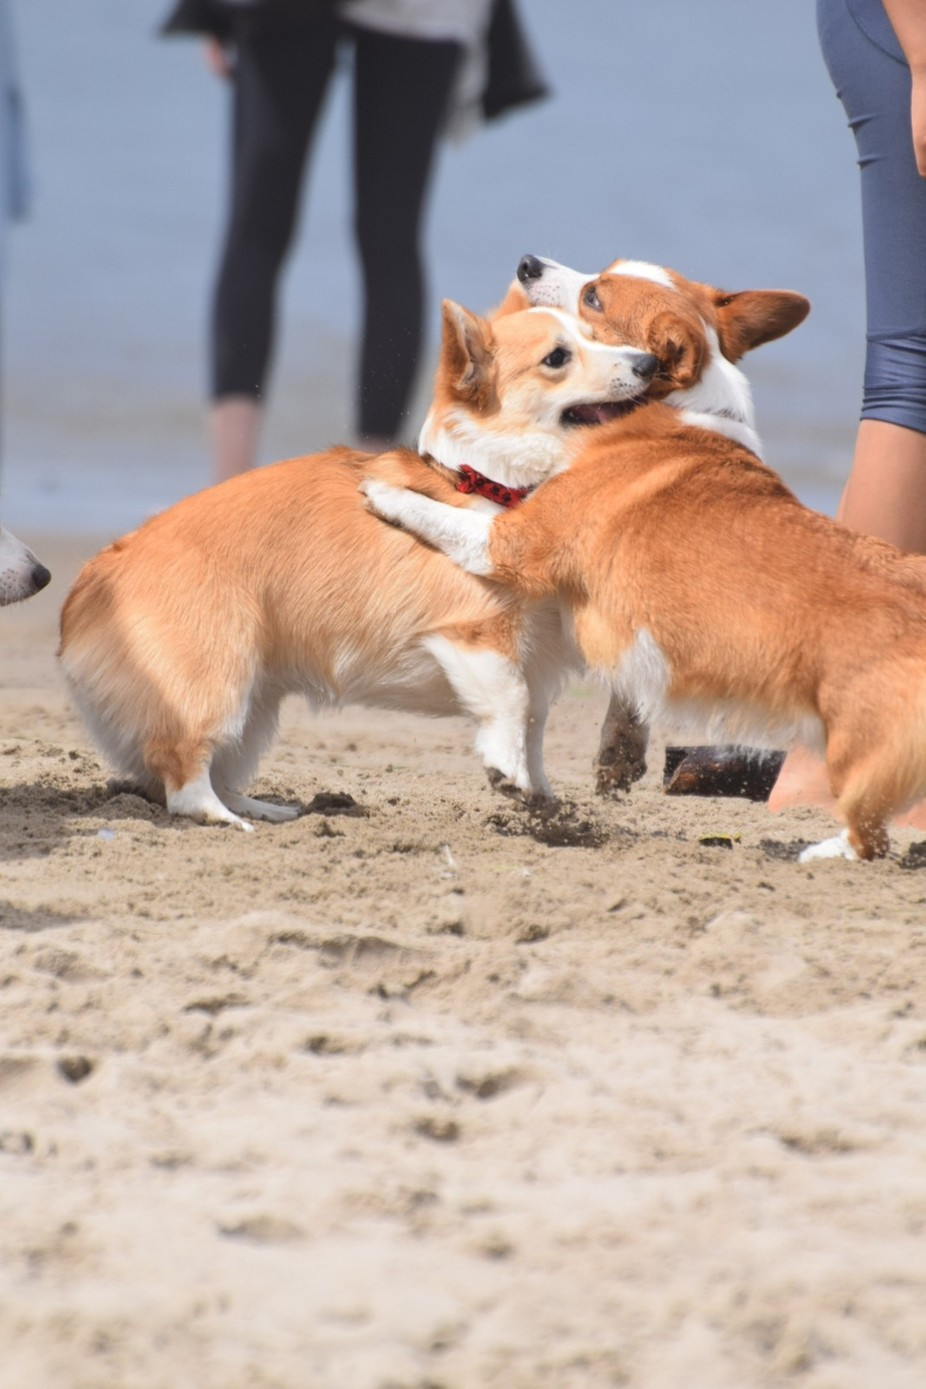 Photo taken at the CorgI Bash in Canon Beach, Oregon, with my Nikon D3300.